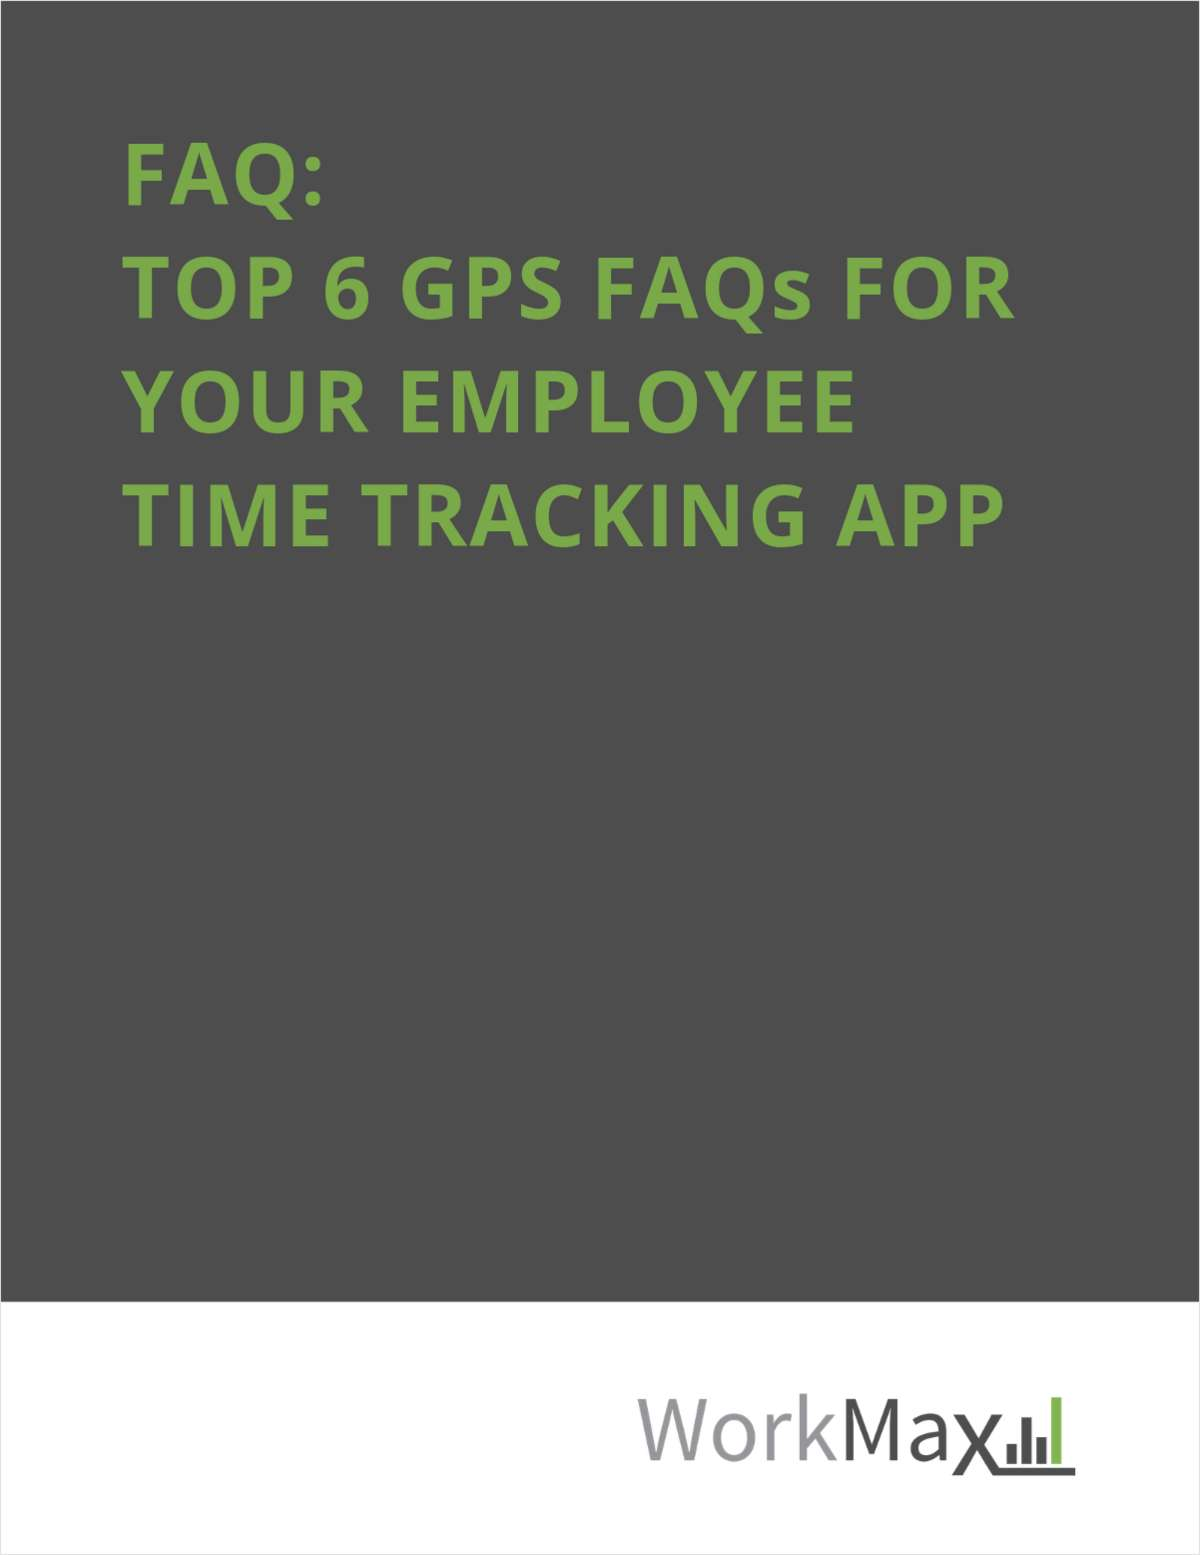 FAQs about GPS and Geofencing for Employee Time Tracking